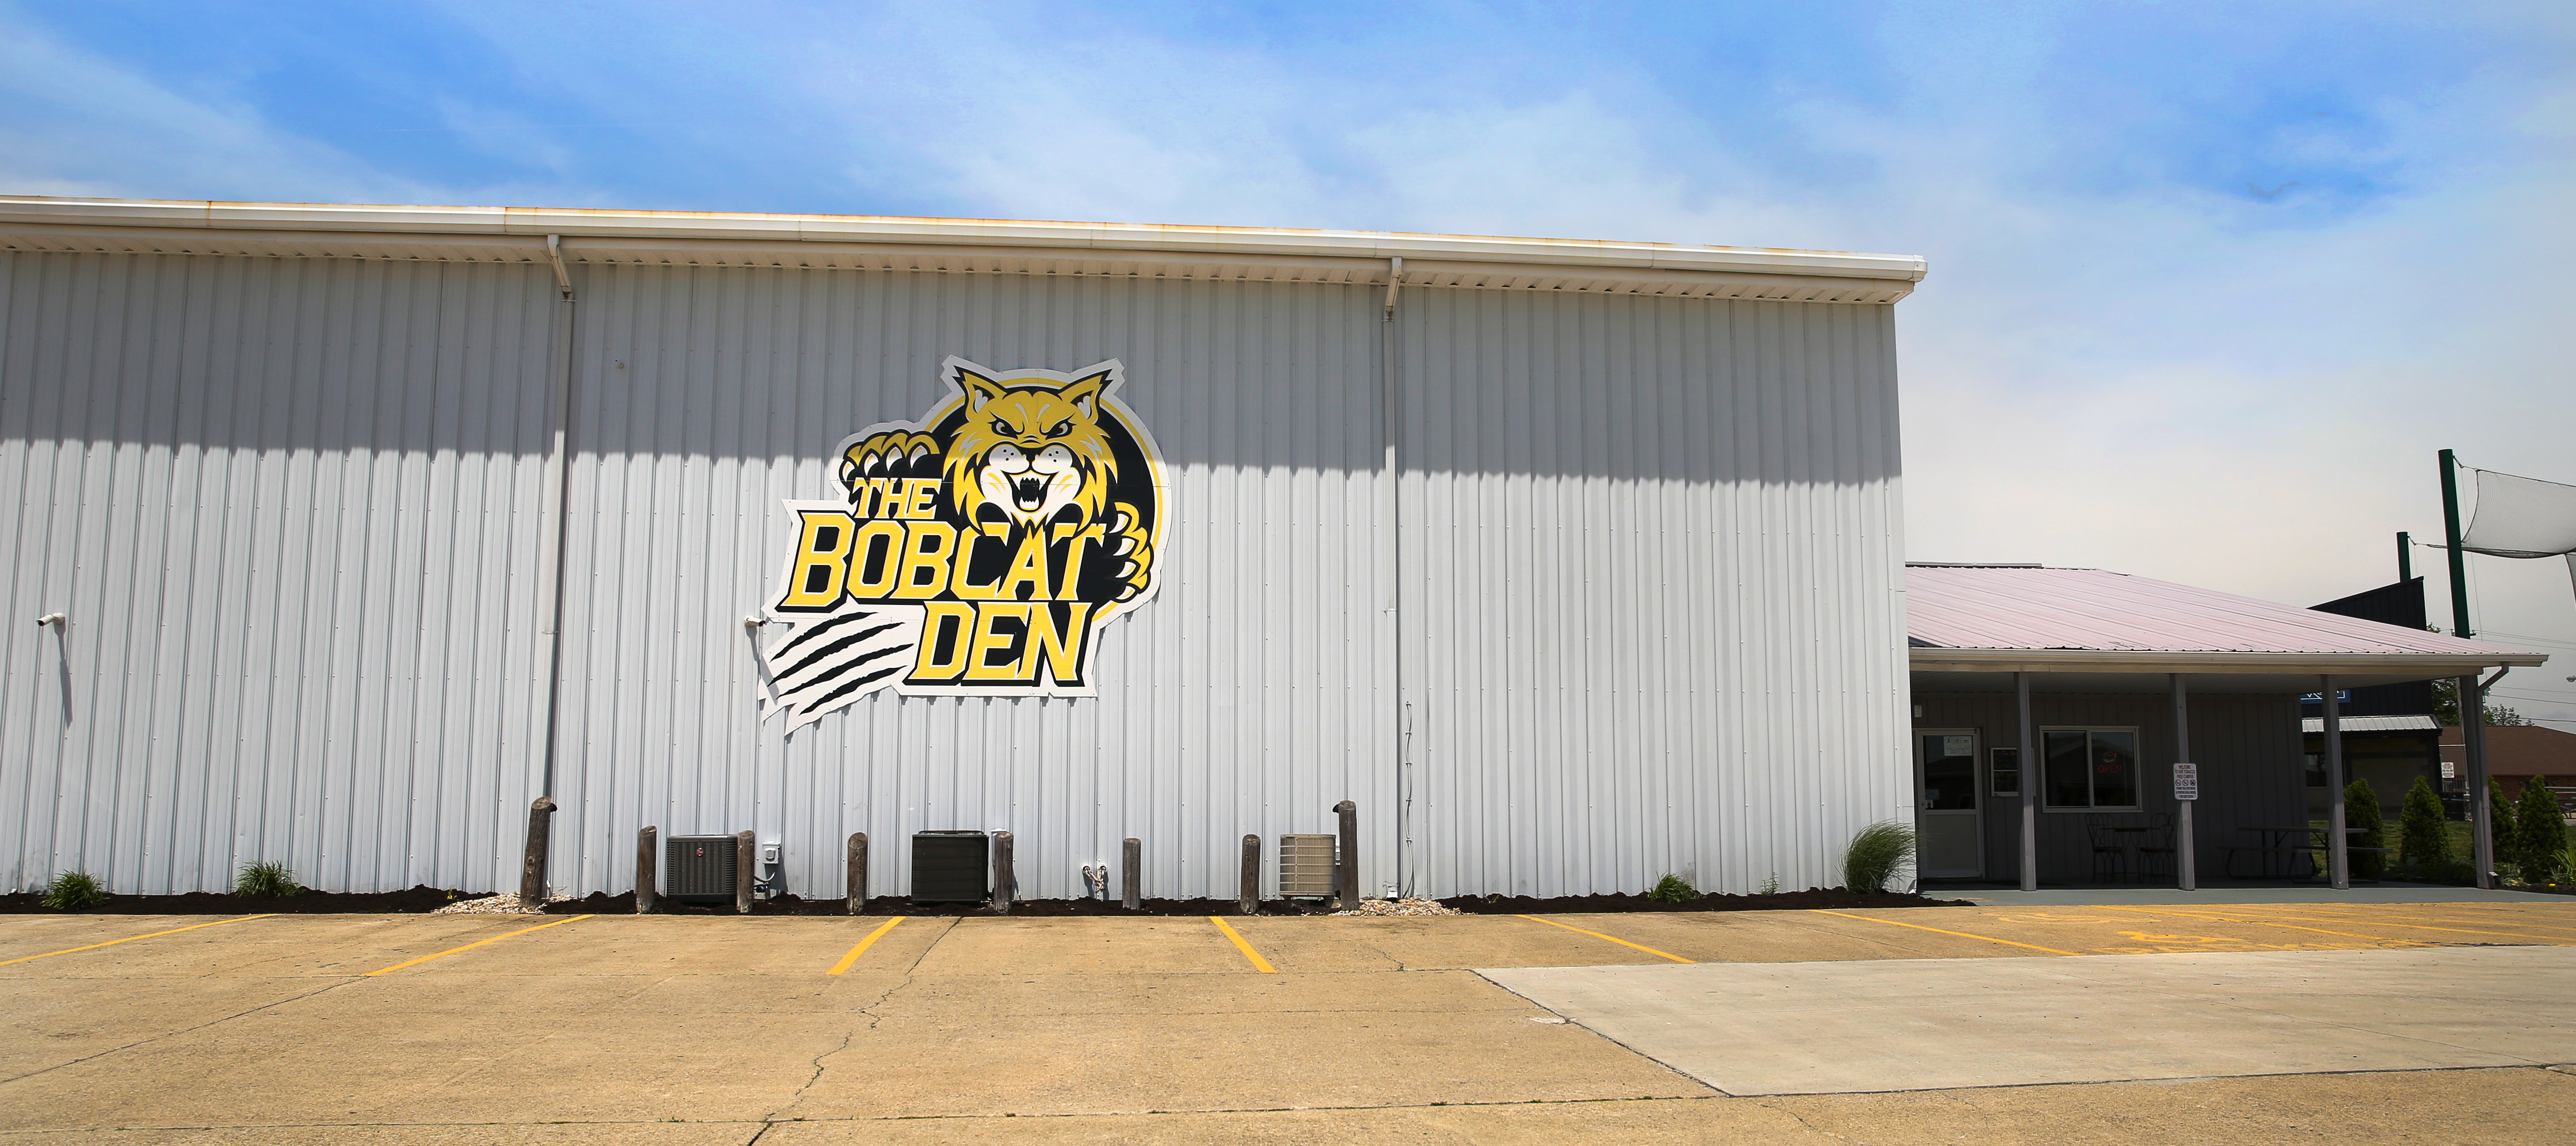 The Bobcat Den building